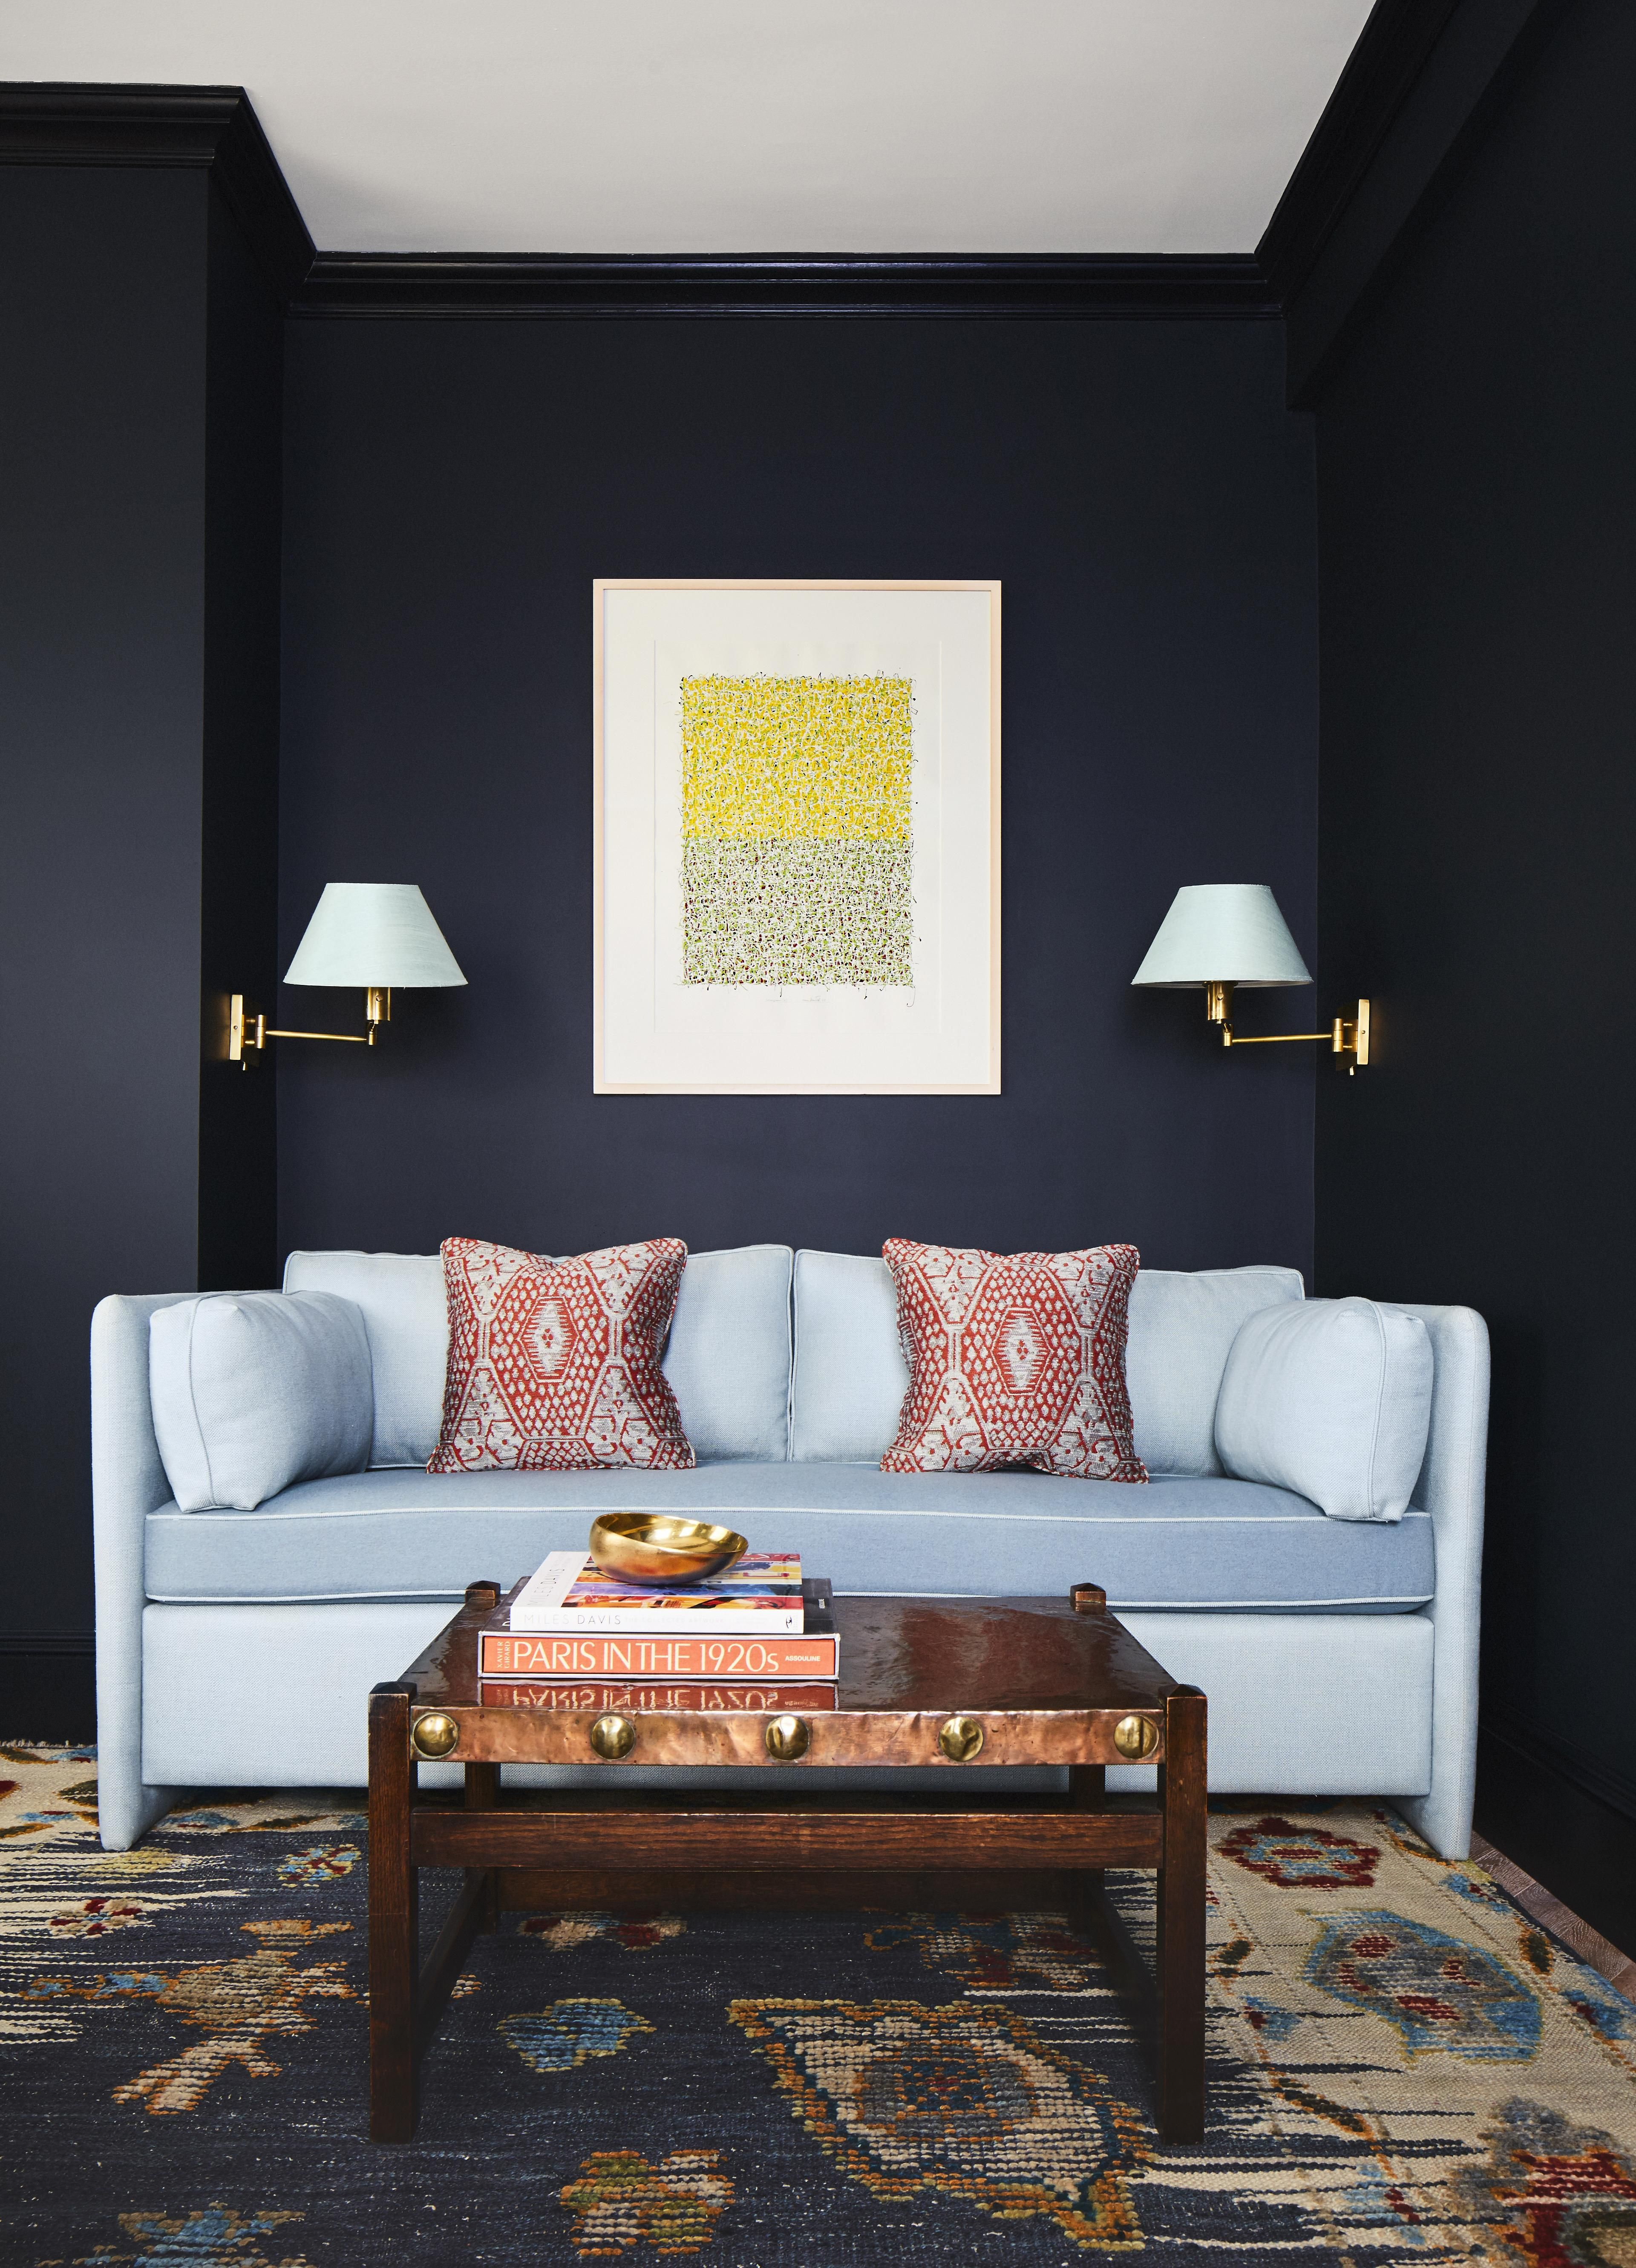 BLUE BLACK PAINT JOBS ICYMI, Matte Black Urrythang Is The Premiere Trend Of  Fall And When It Comes To Walls, Just About Every Color Agency Is Dubbing  Deep ...